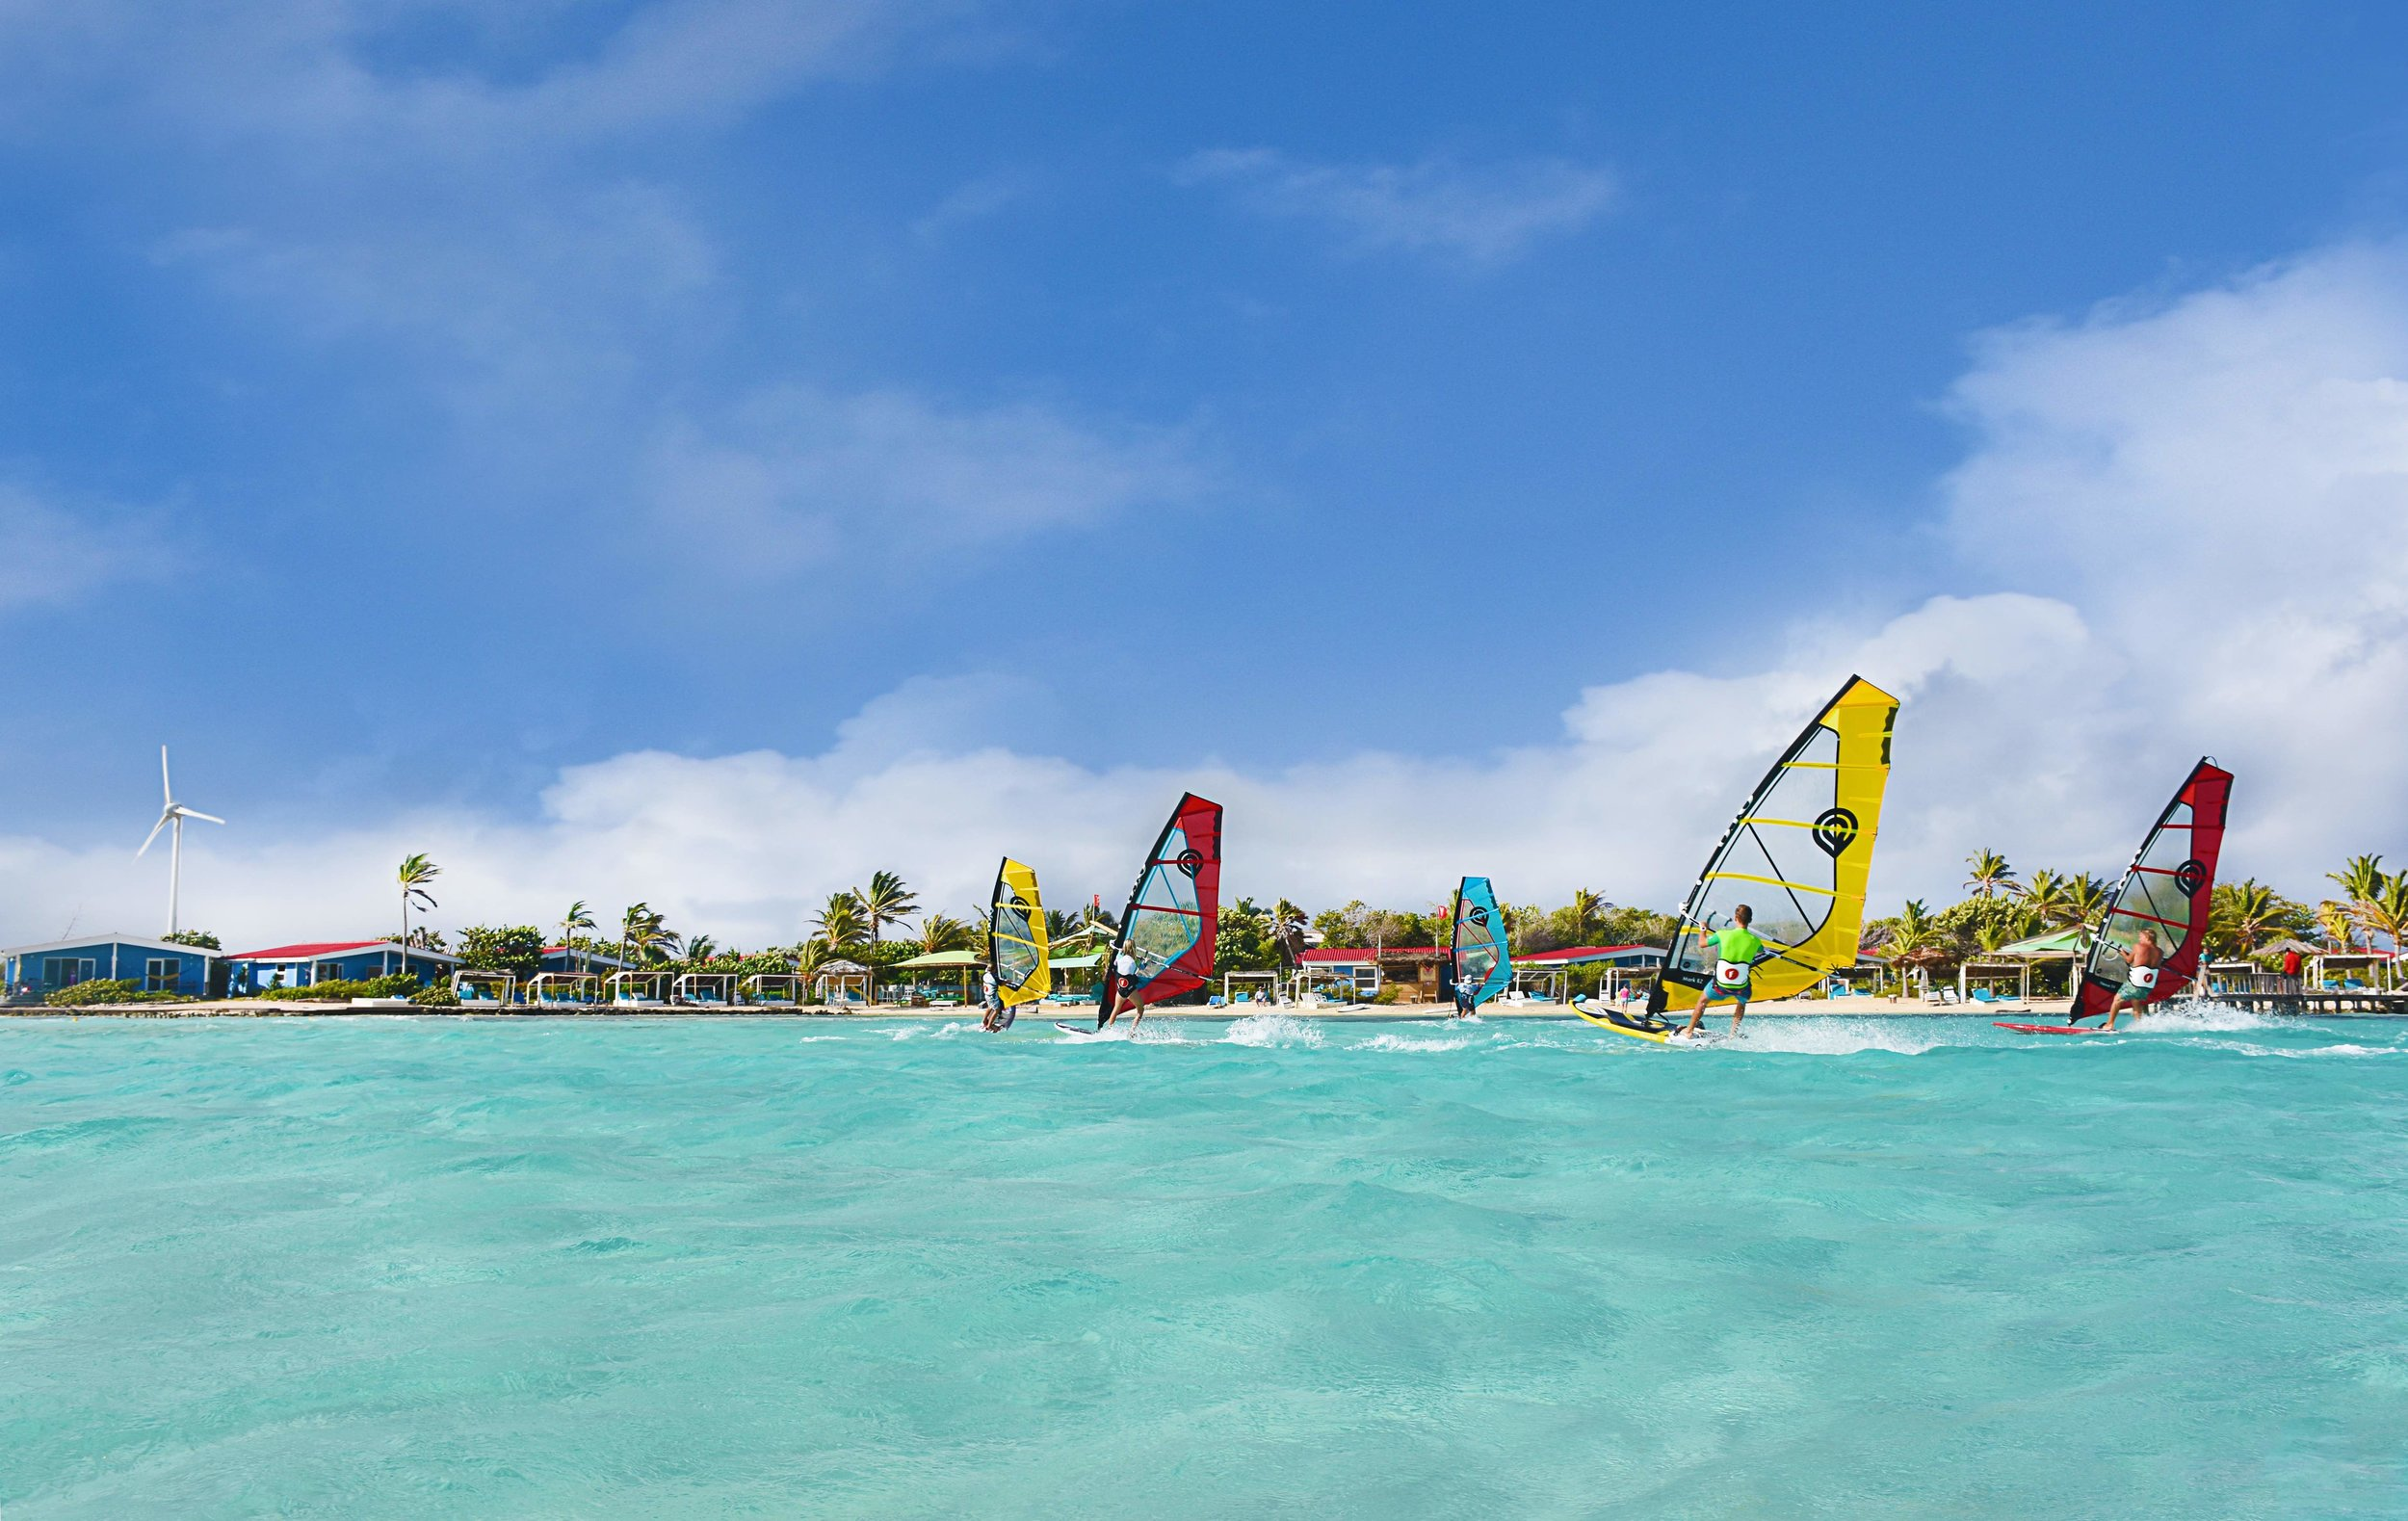 Windsurfing with Goya Equipment in front of Sorobon Beach Resort